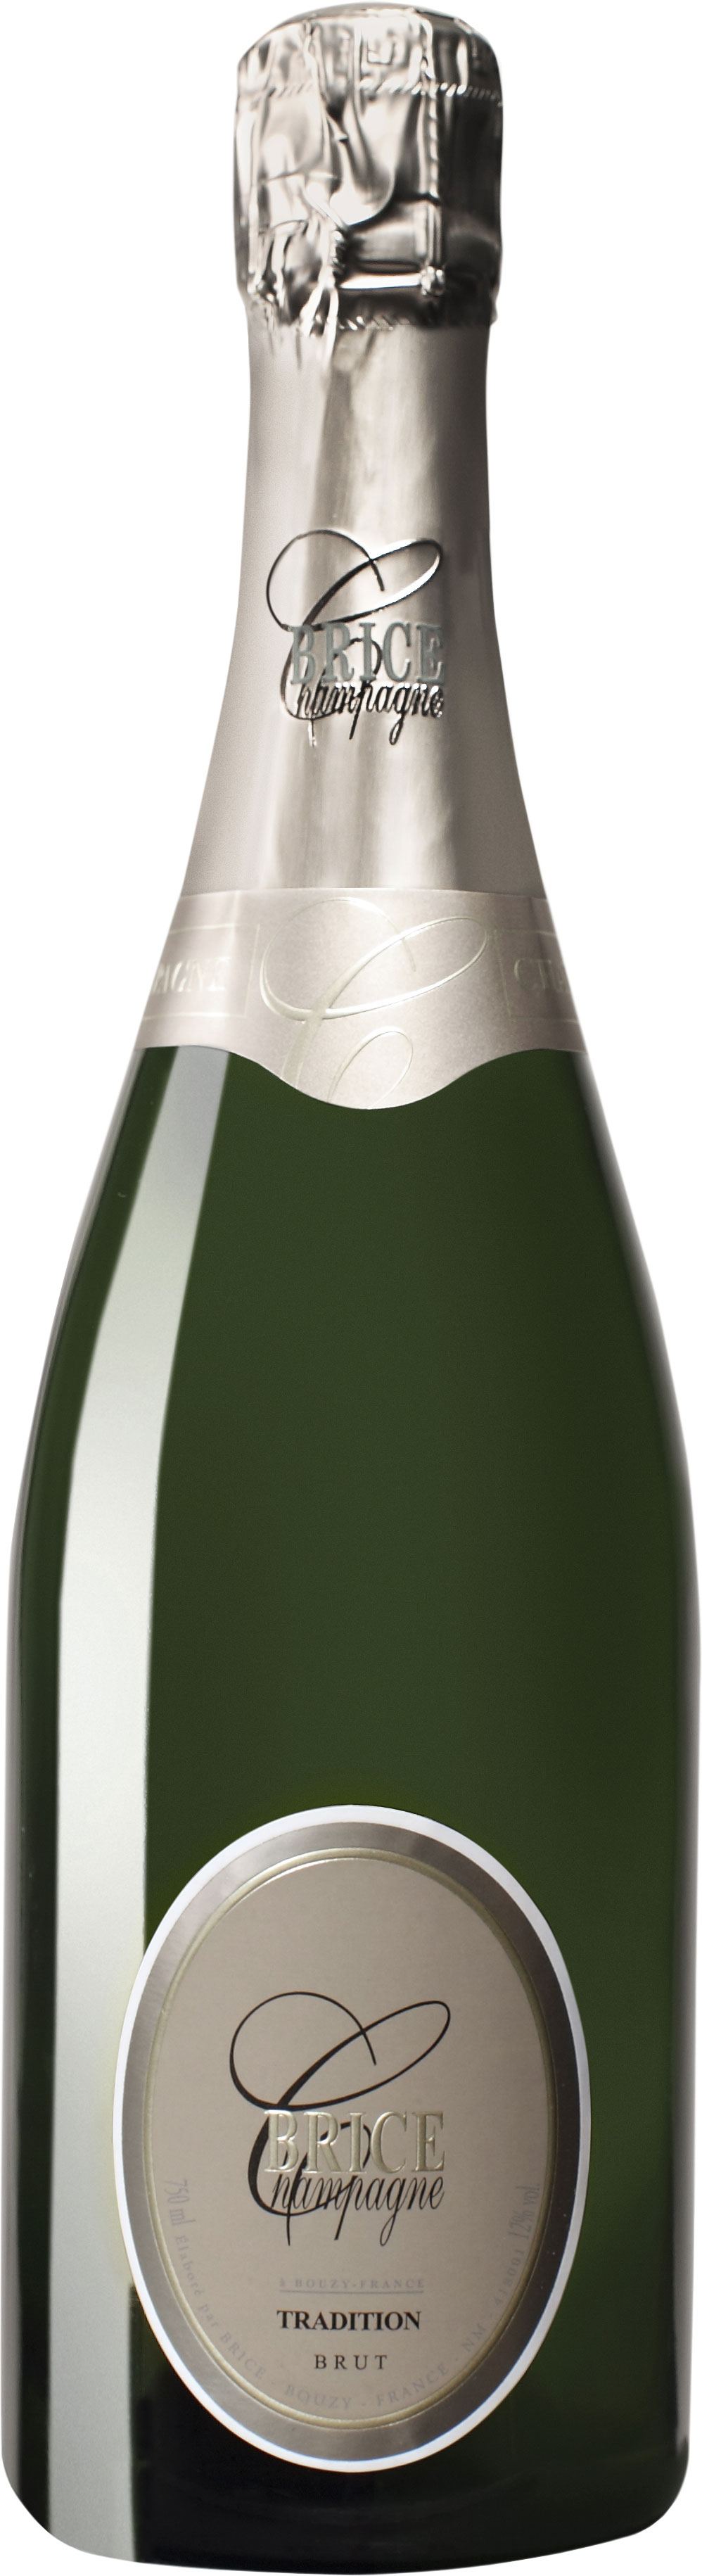 Champagne Brice - Brut Tradition NV 75cl Bottle